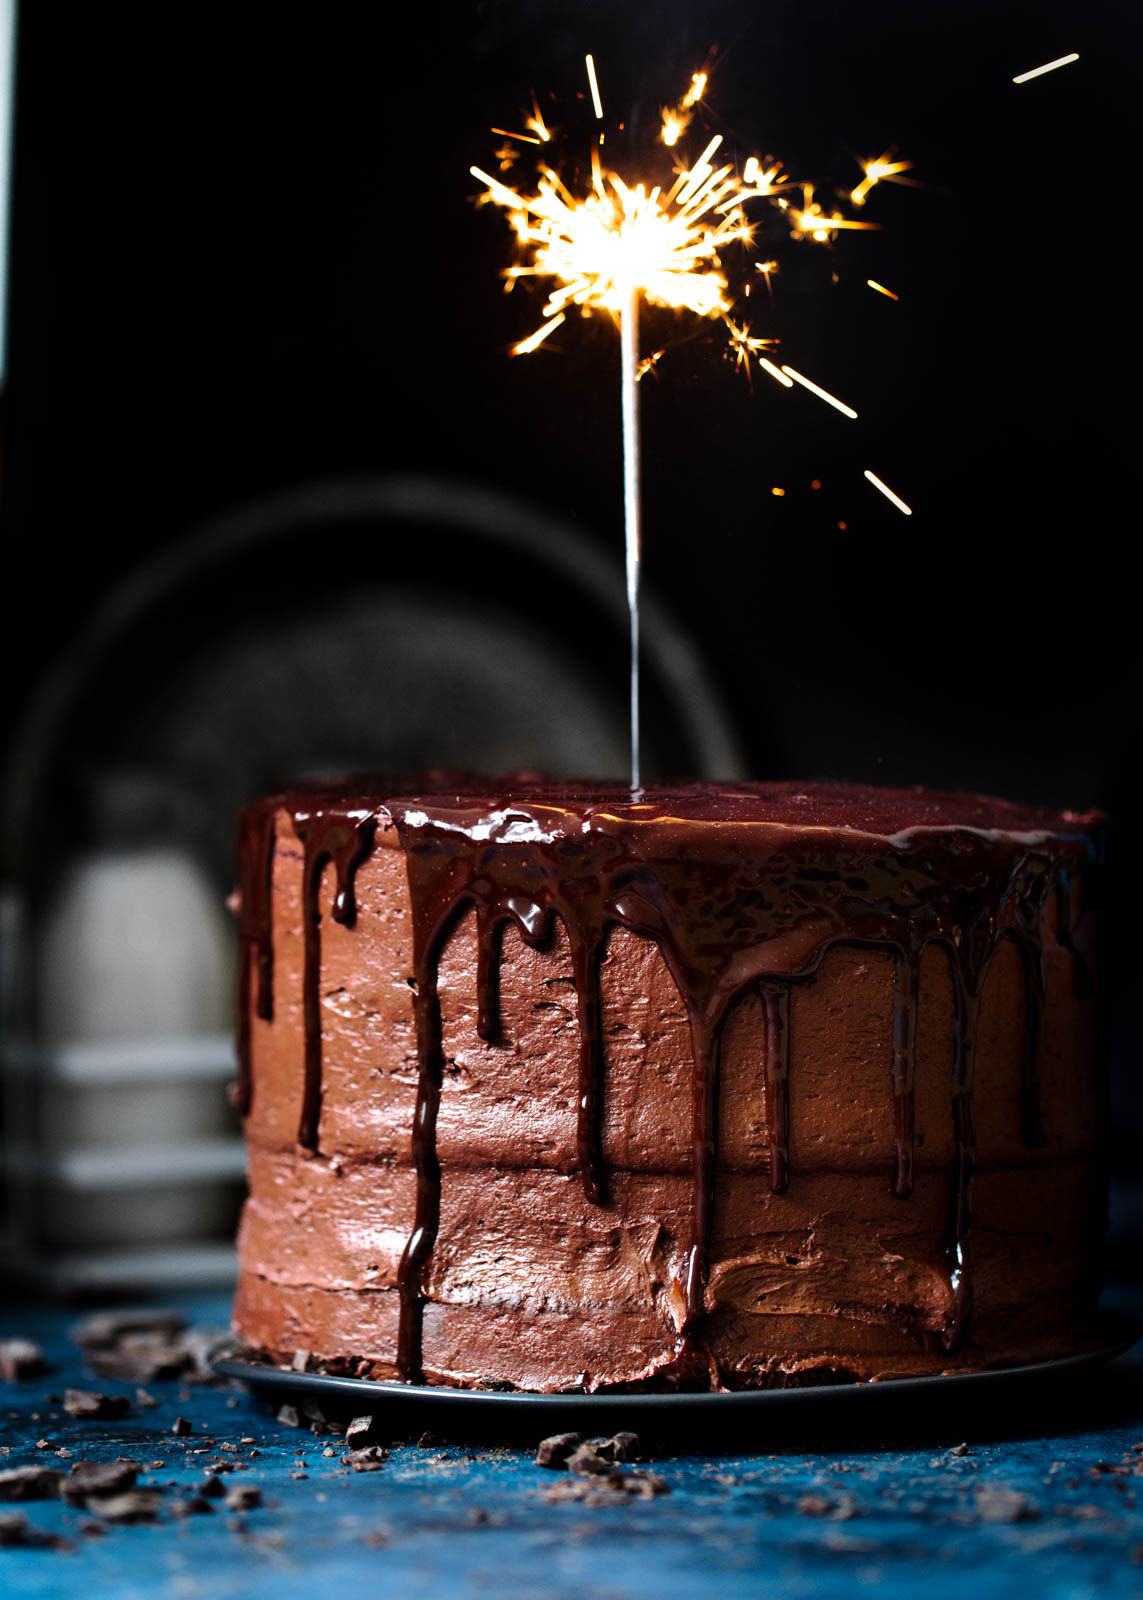 Chocolate Mocha Cake with sparkler on top